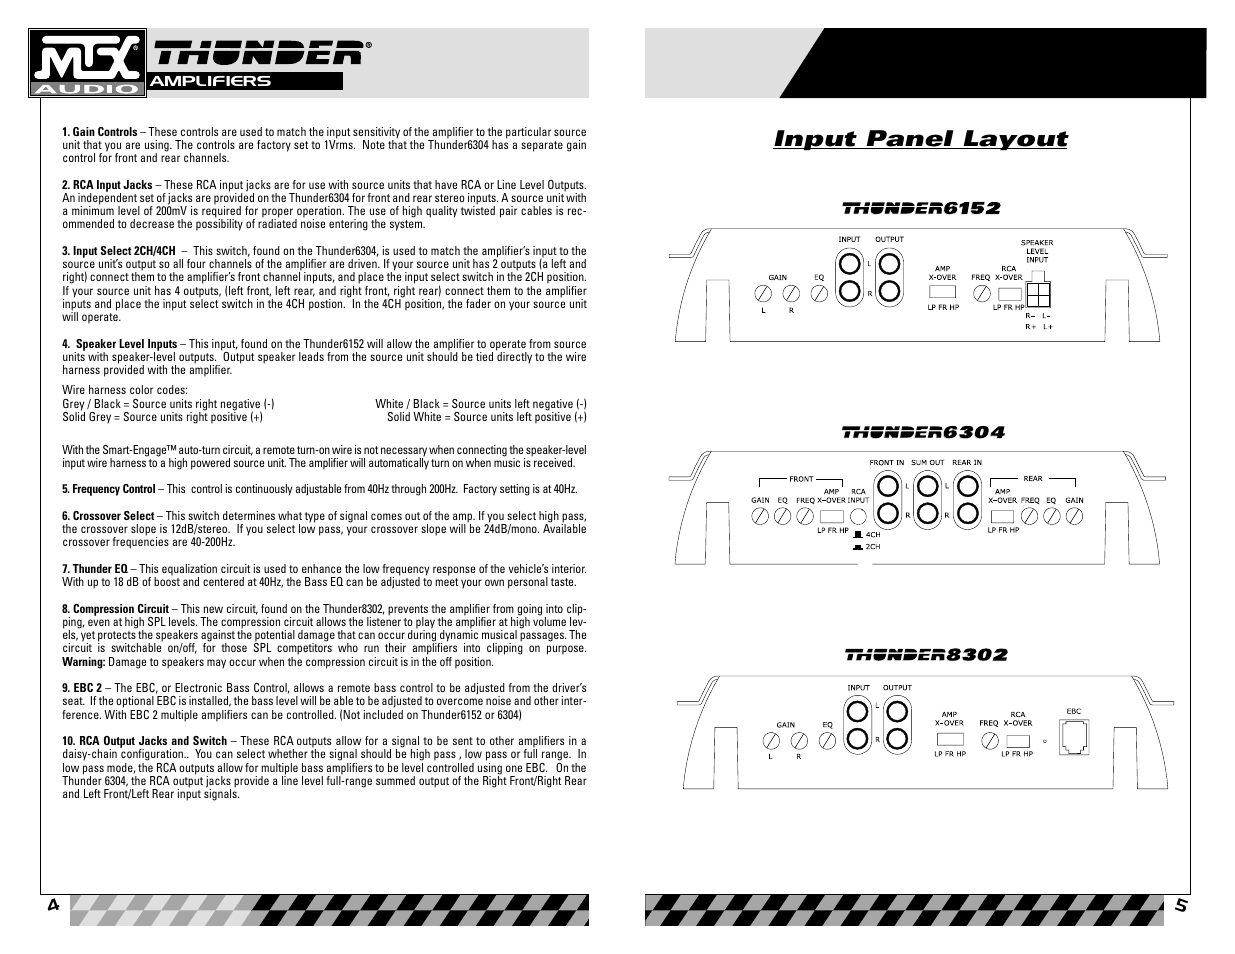 Mtx Audio 8302 User Manual Page 3 19 Also For Thunder 6152 6304 Amp To Stereo Rca Speaker Wiring Harness Factory Line